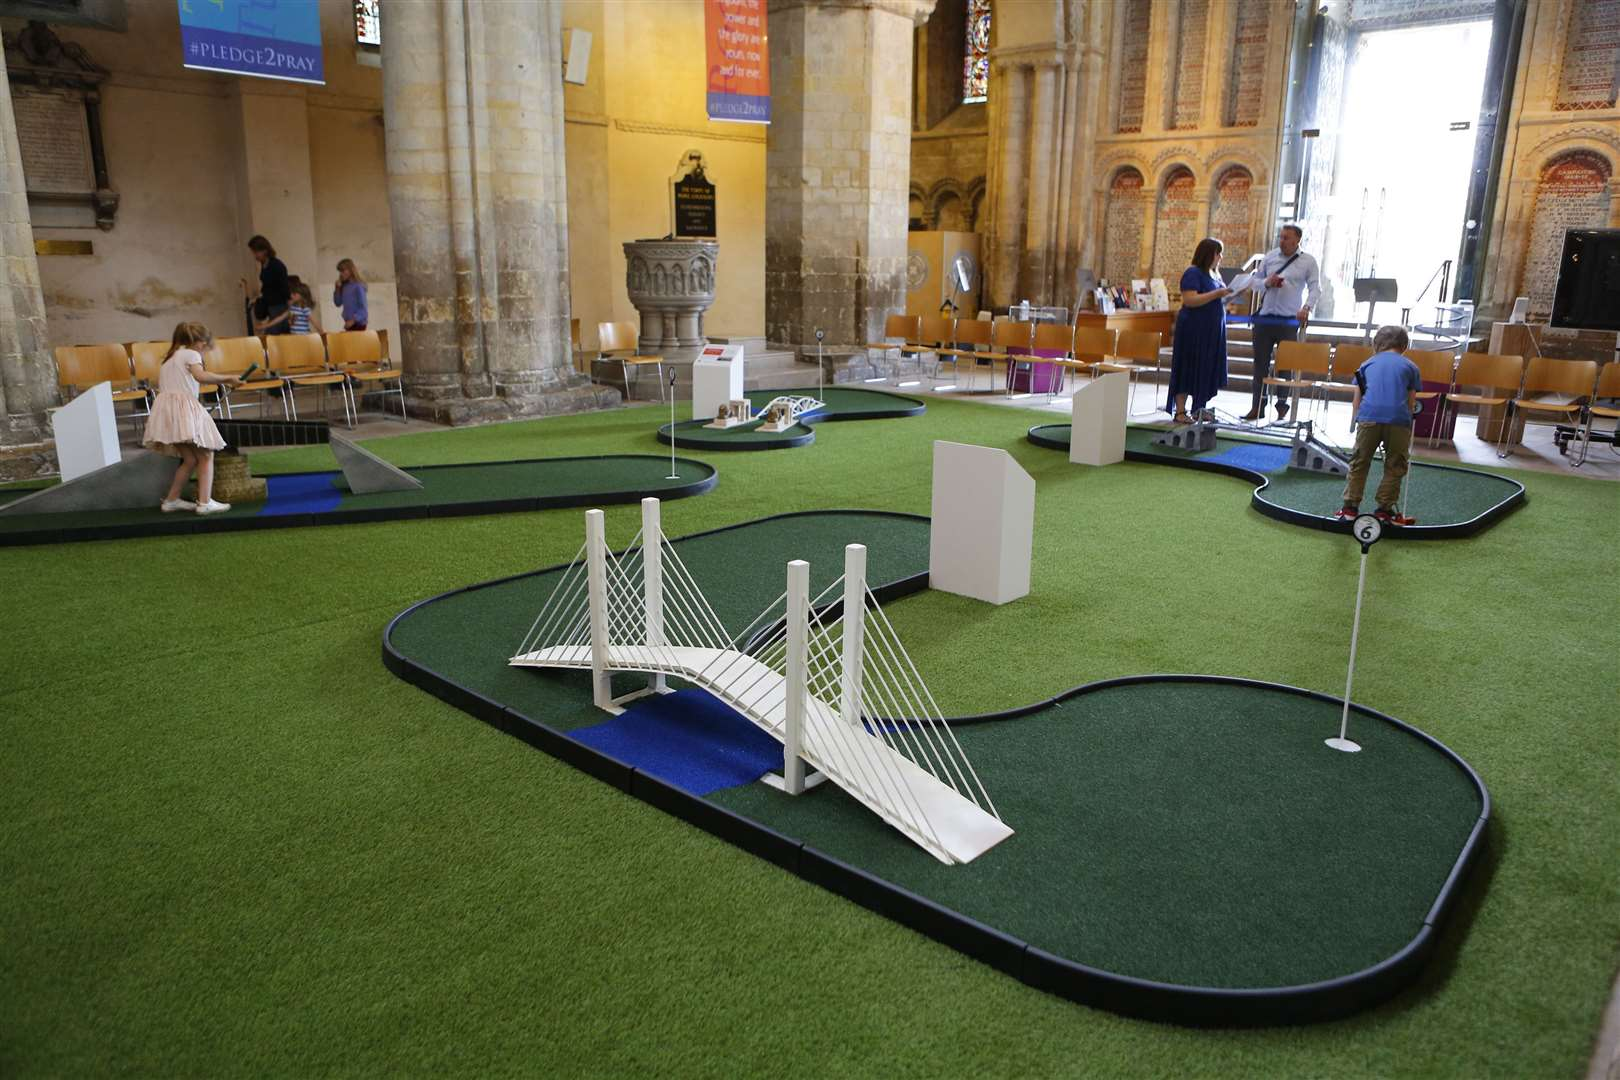 Rochester Cathedral crazy golf has proved very popular